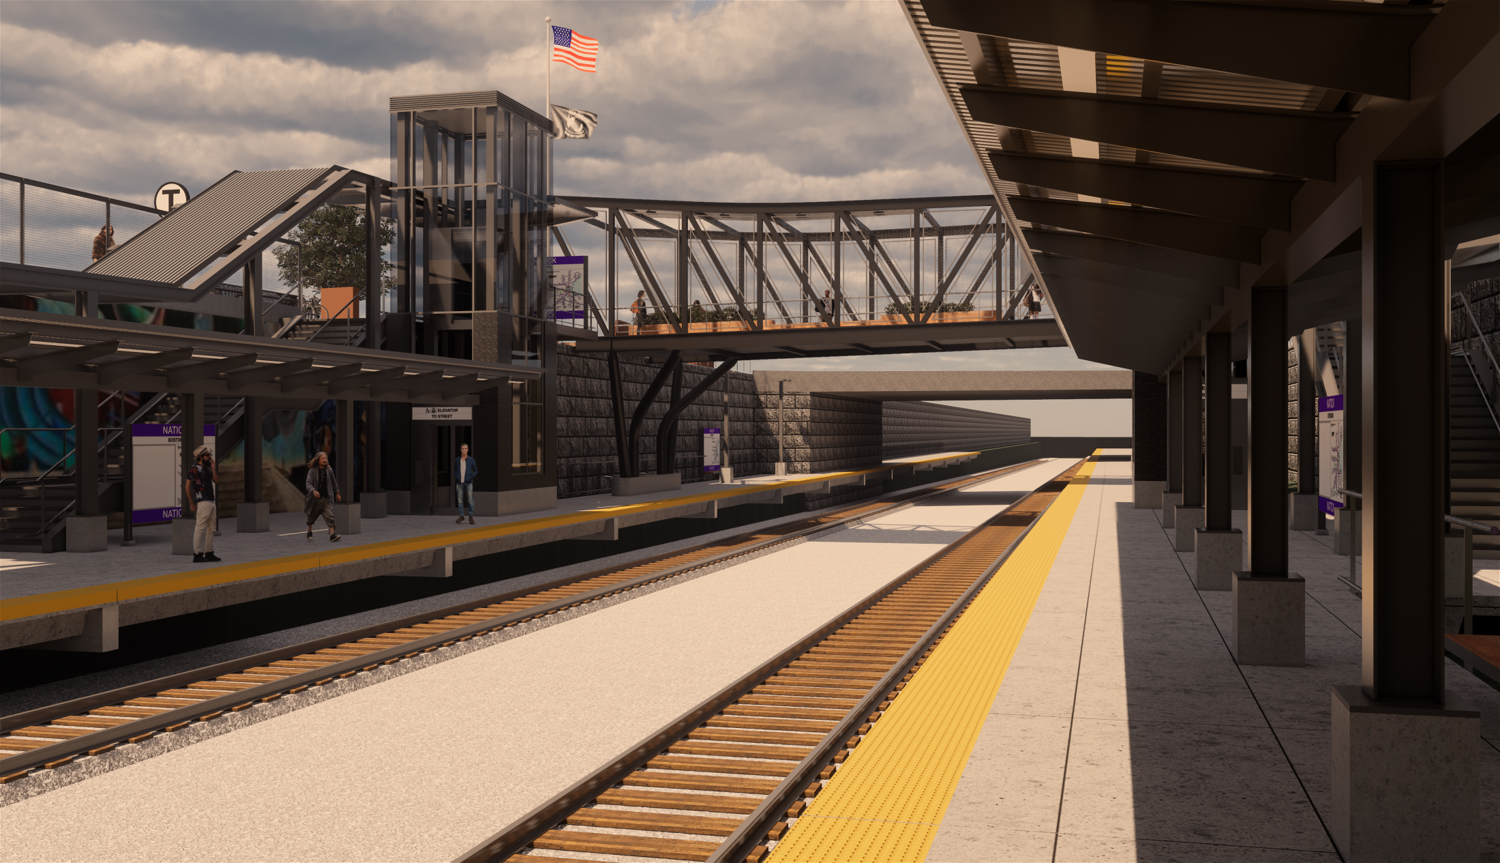 Rendering of the station elements, viewed from the platform